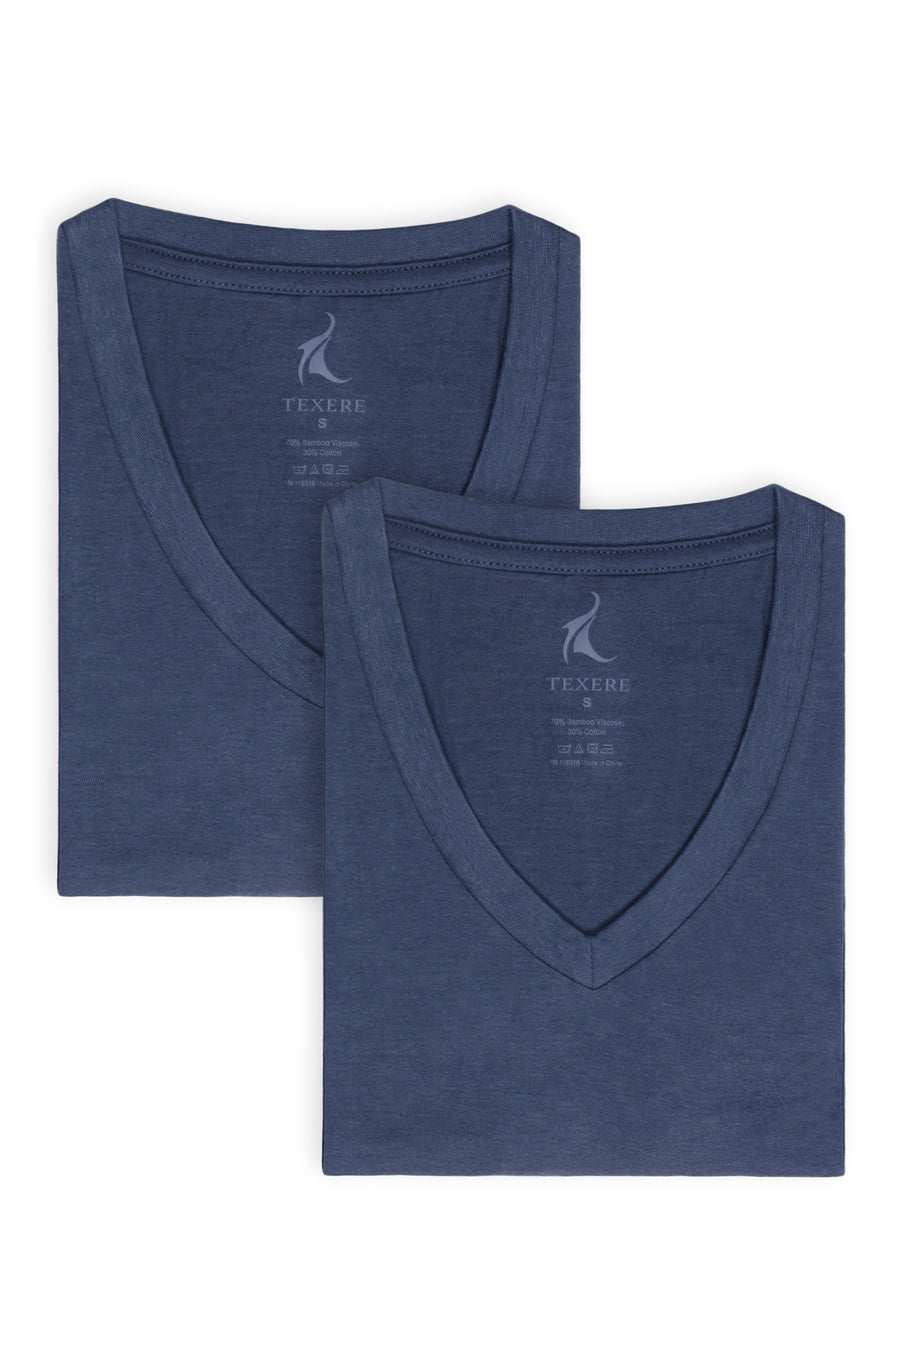 Meio - Men's Bamboo Viscose V-Neck Undershirt - 2 Pack - TexereSilk